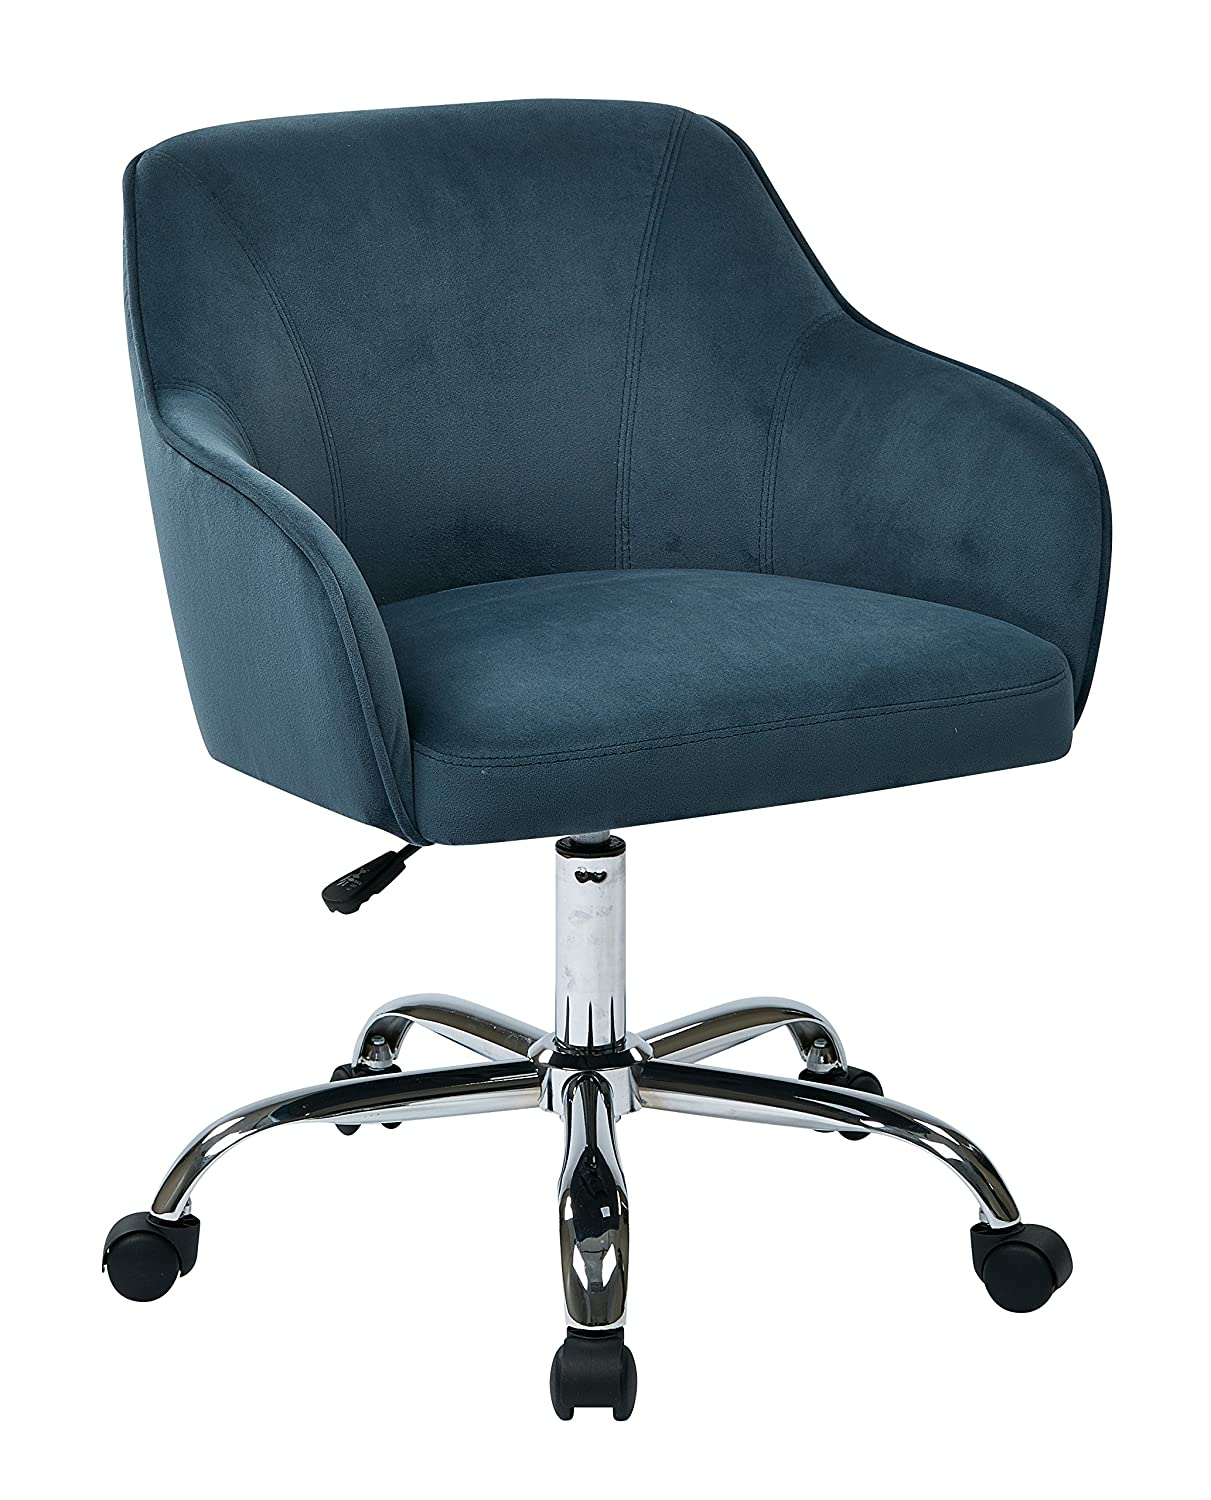 AVE SIX Bristol Chrome Base Upholstered Task Chair, Atlantic Blue Velvet